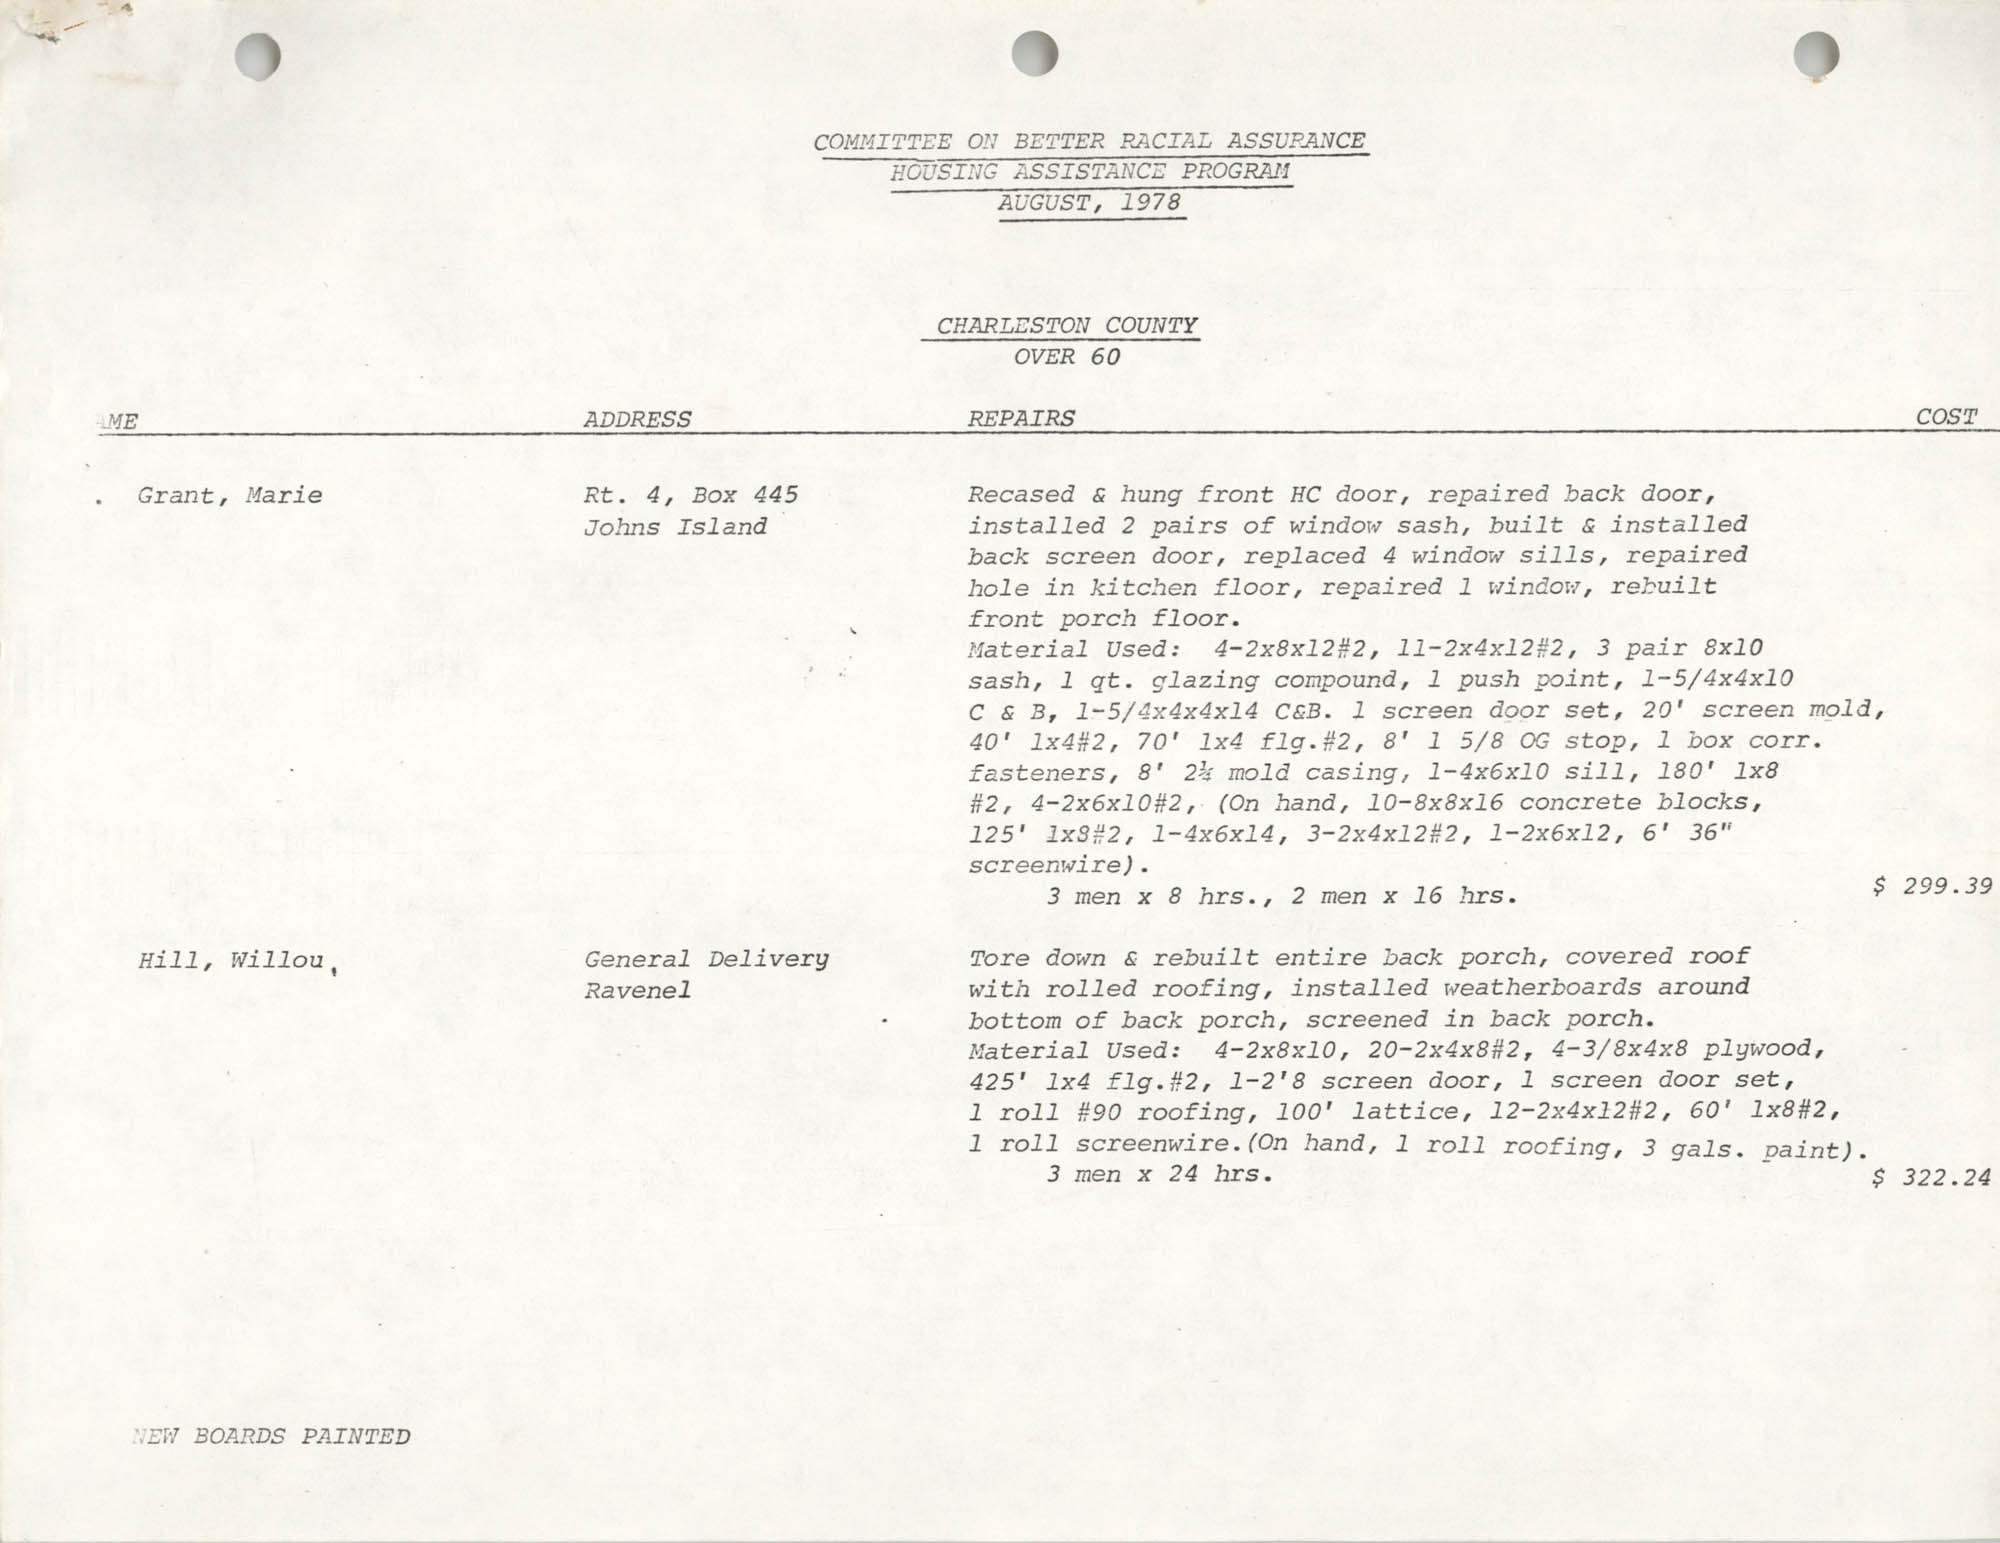 Housing Assistance Program Report, August 1978, Page 1